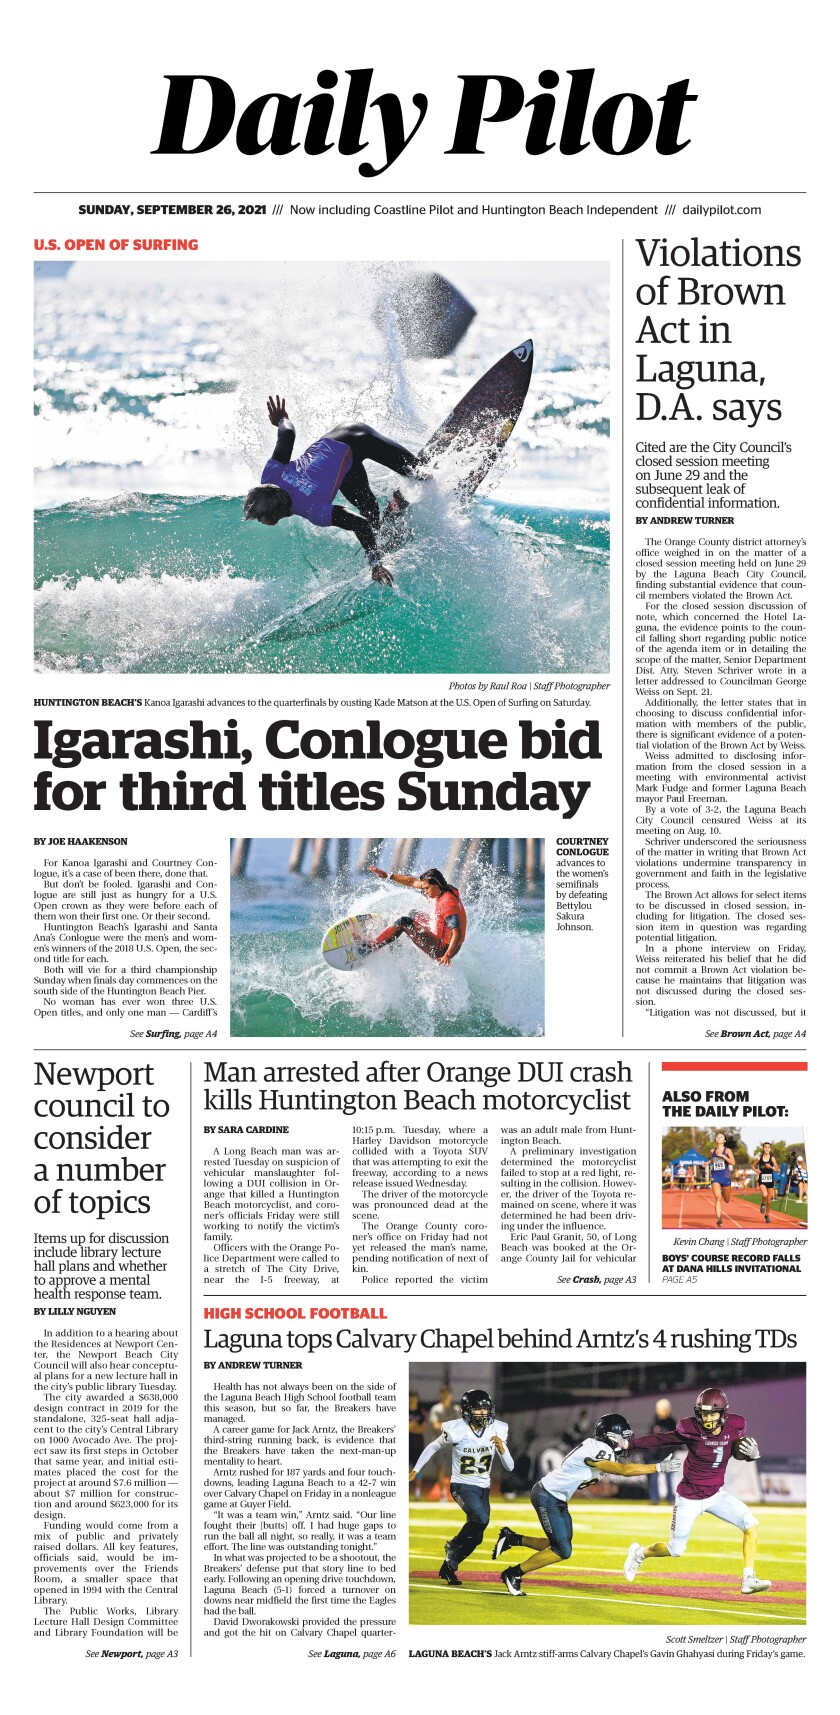 Front page of Daily Pilot e-newspaper for Sunday Sept. 26, 2021.